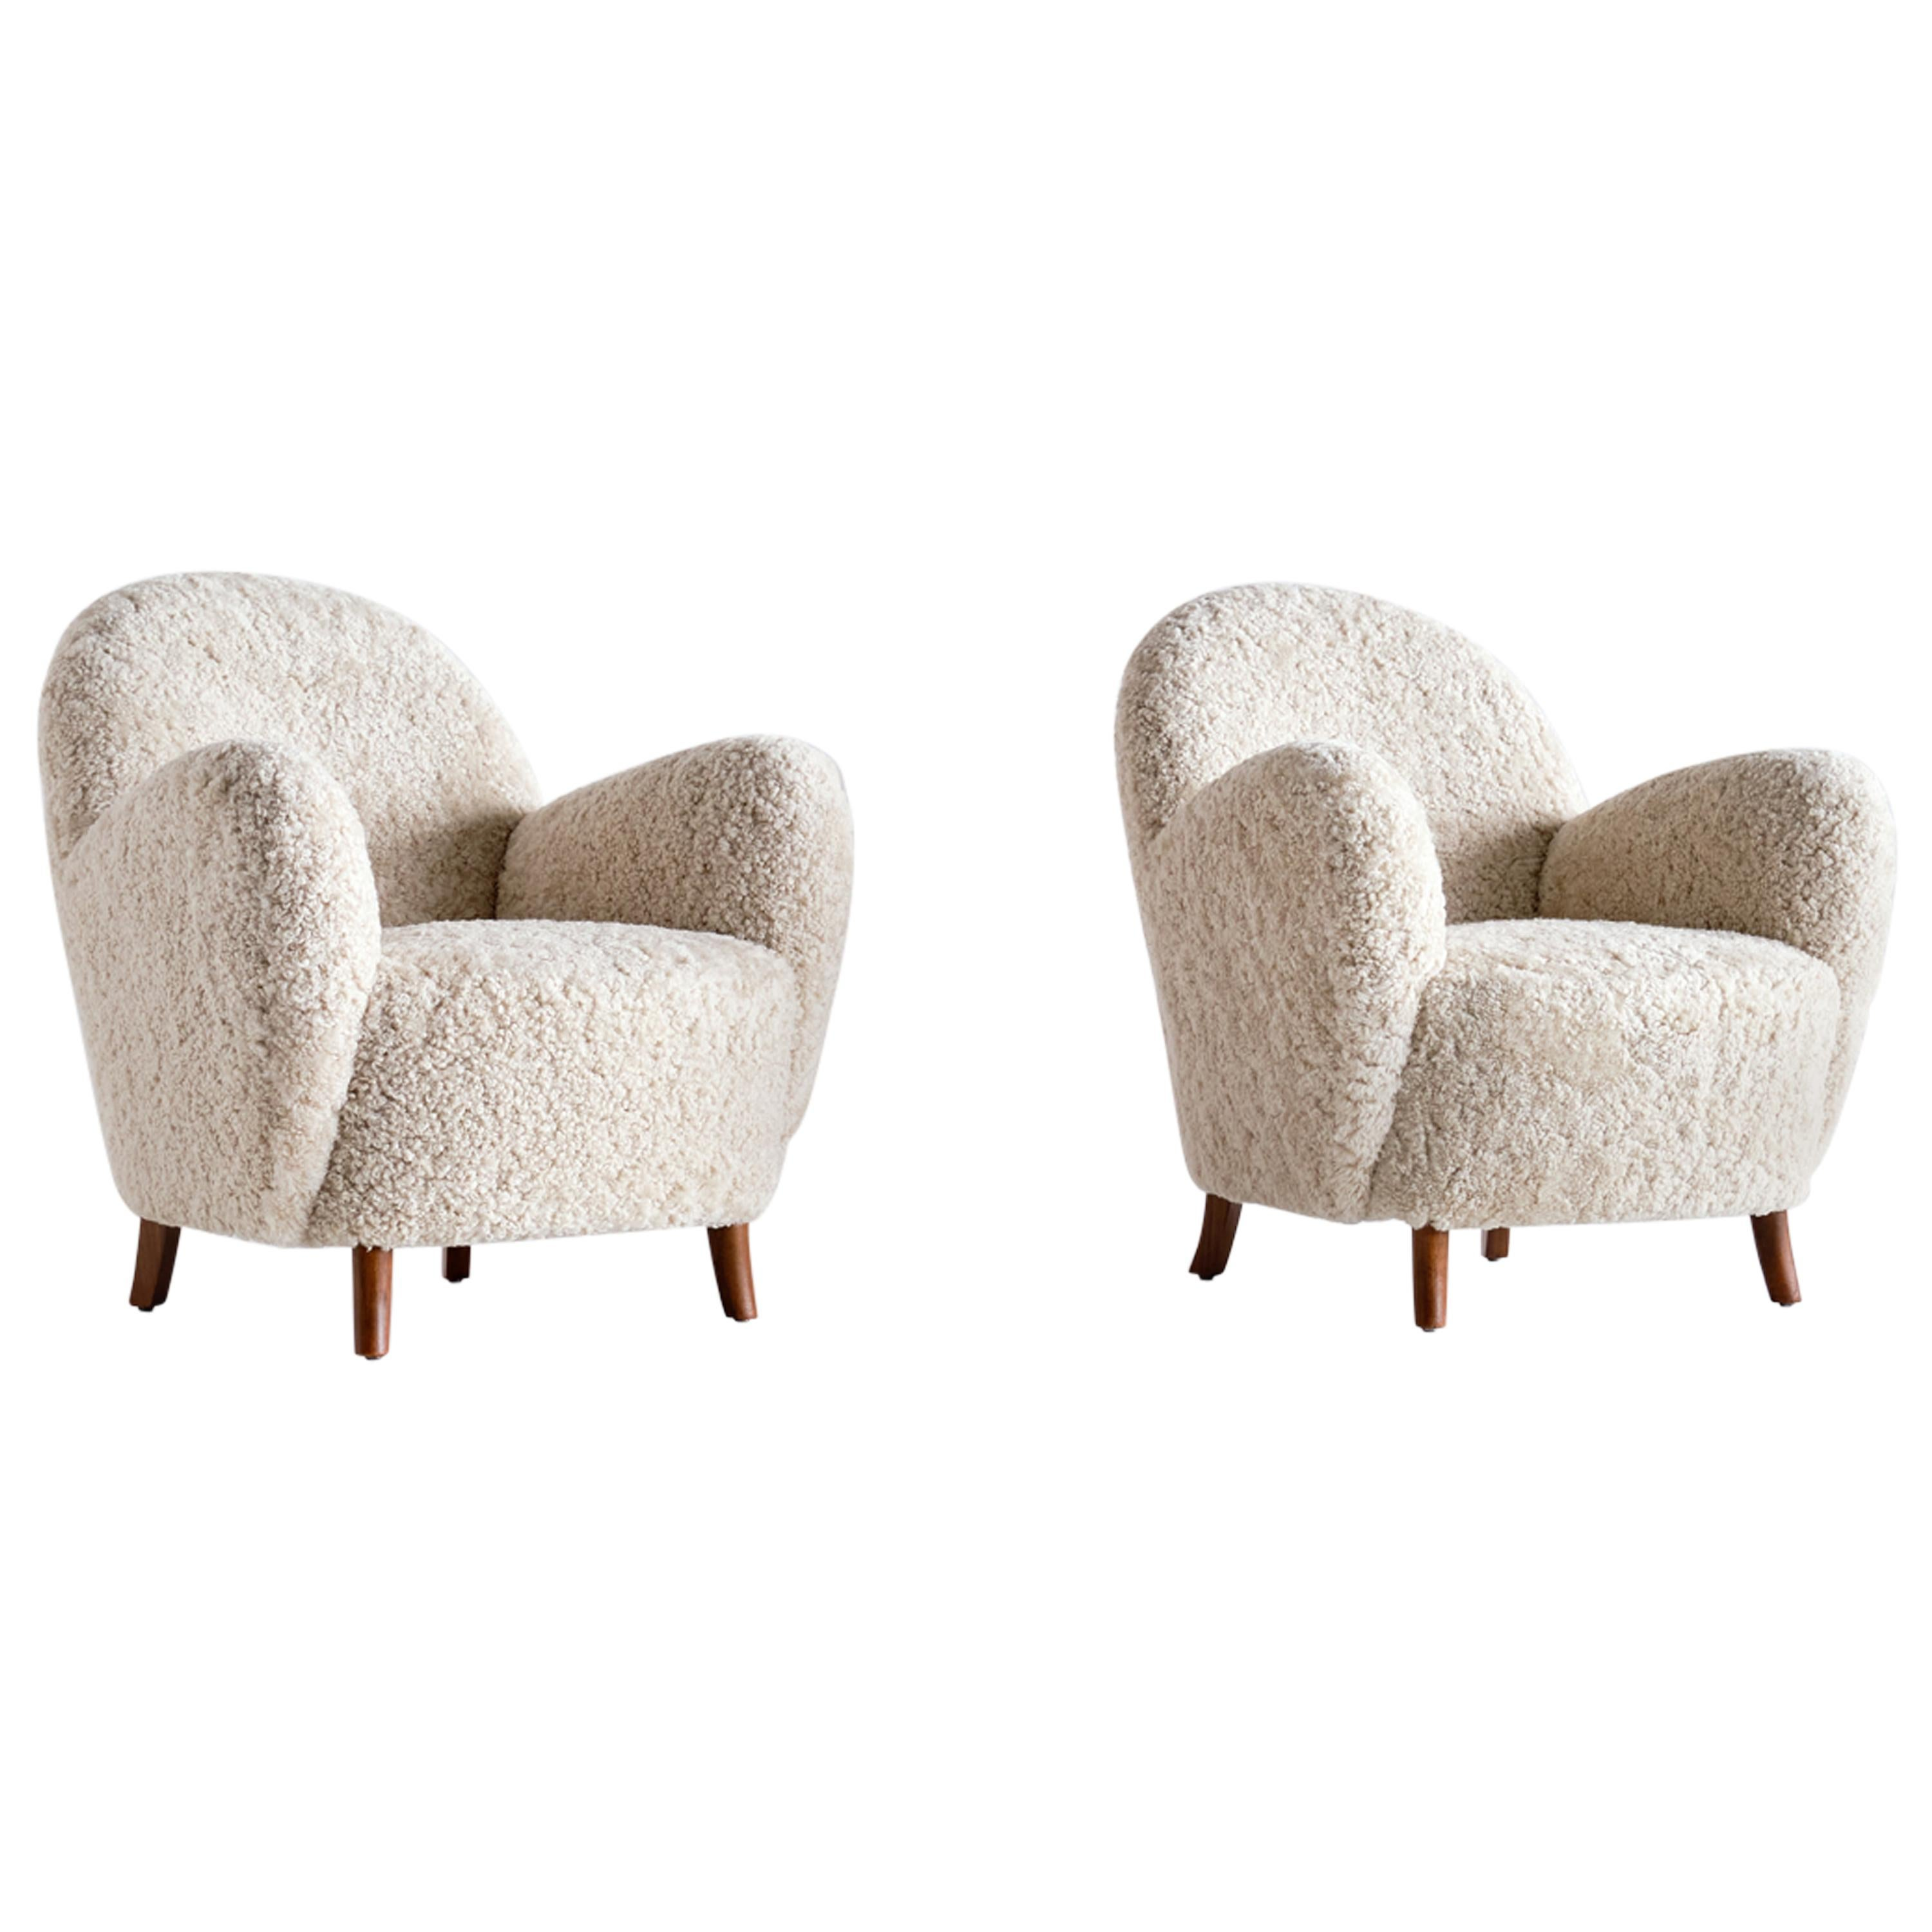 Pair of Thorald Madsen Armchairs in Sheepskin and Beech, Denmark, Mid 1930s